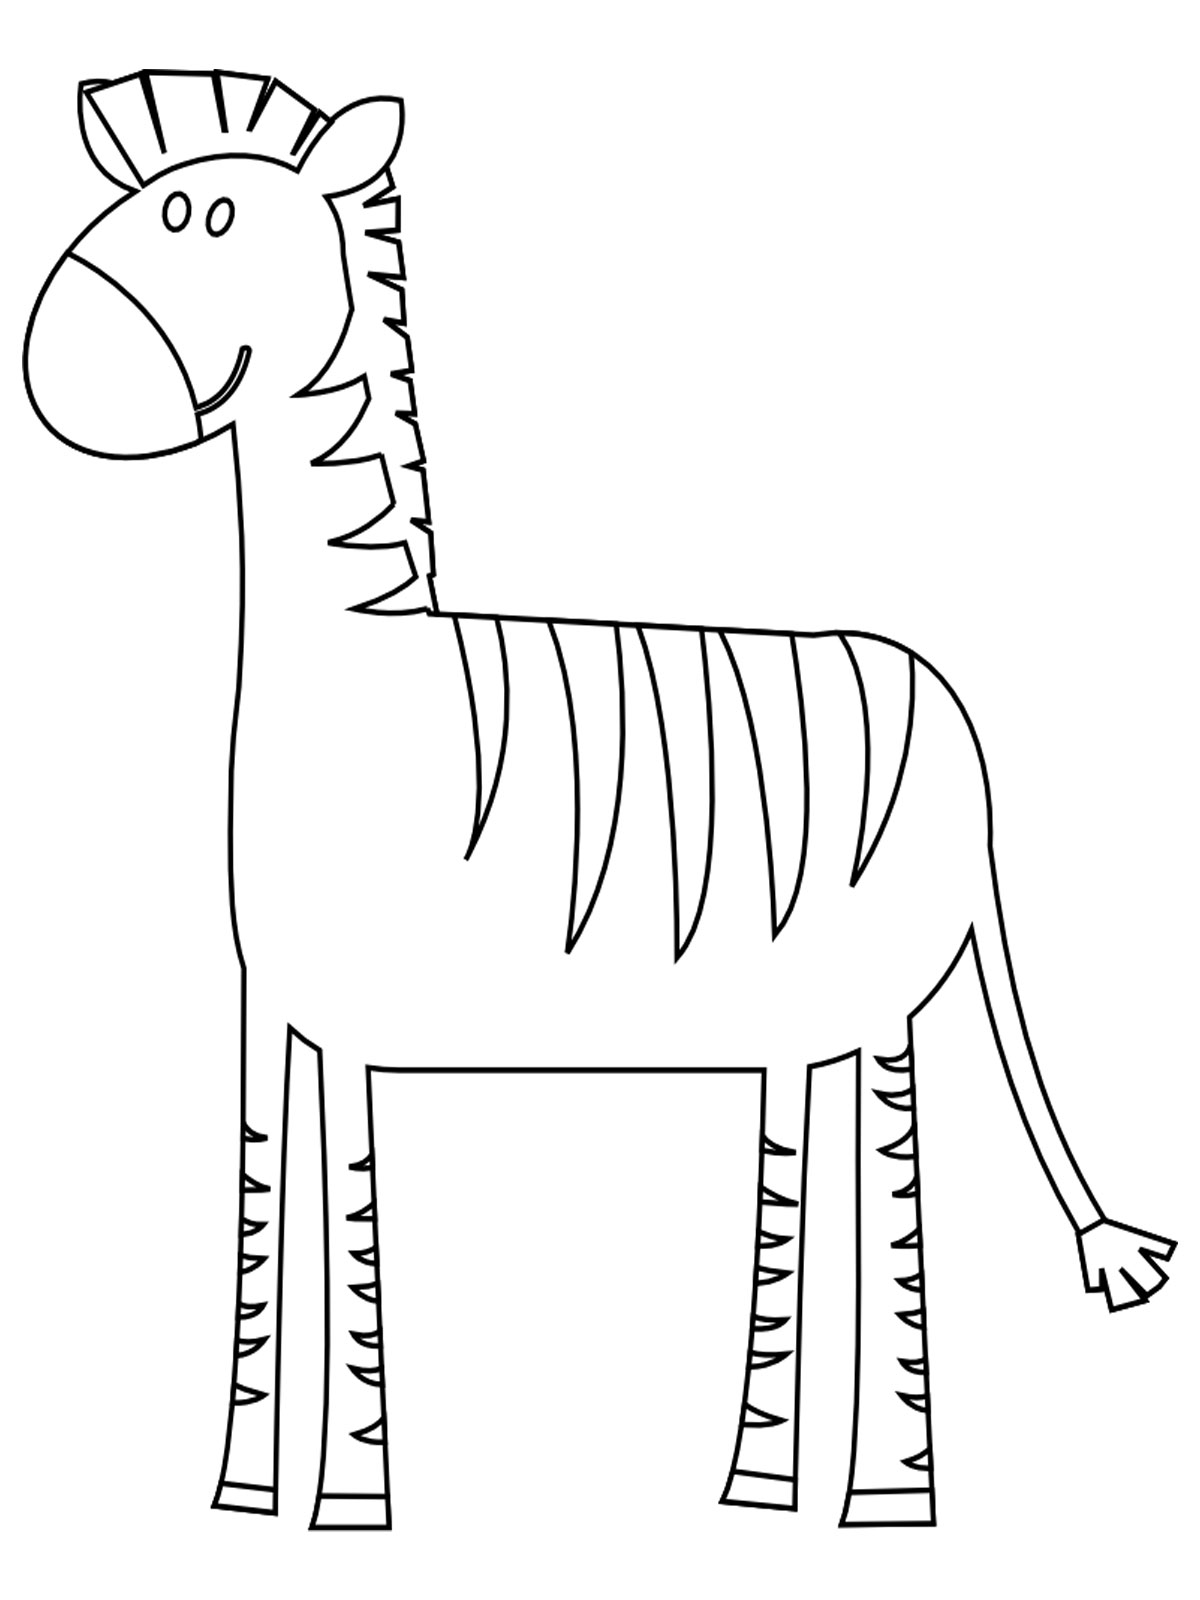 Free coloring pages of outline of zebra for Zebra without stripes coloring page